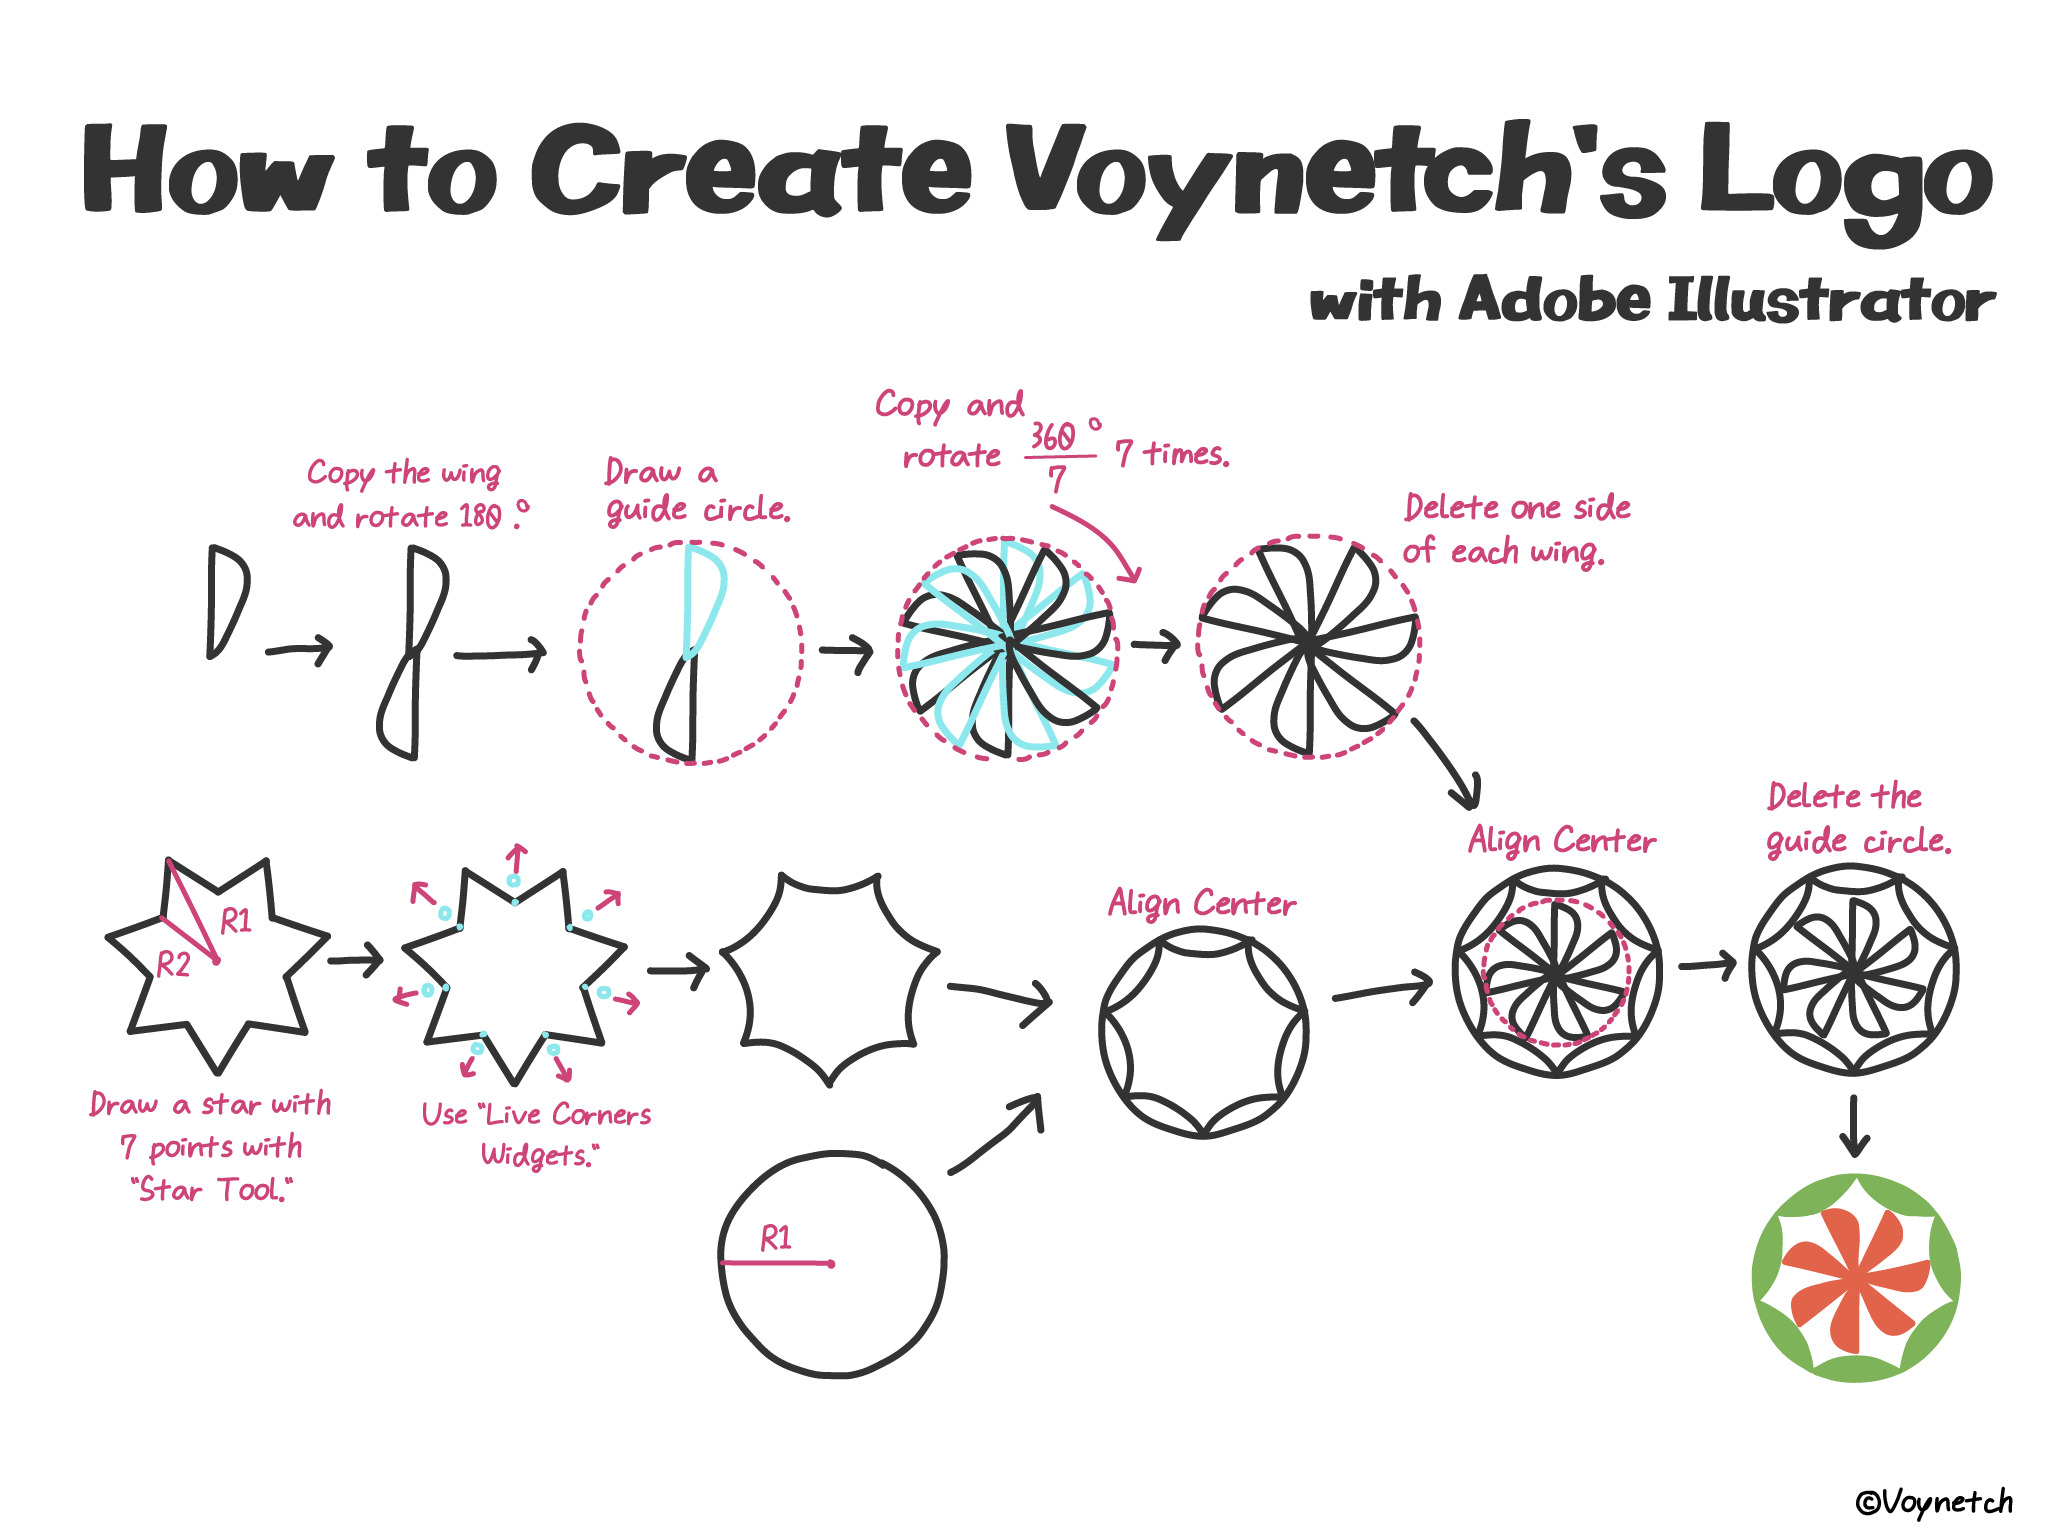 How to Create Voynetch's Logo with Adobe Illustrator Image